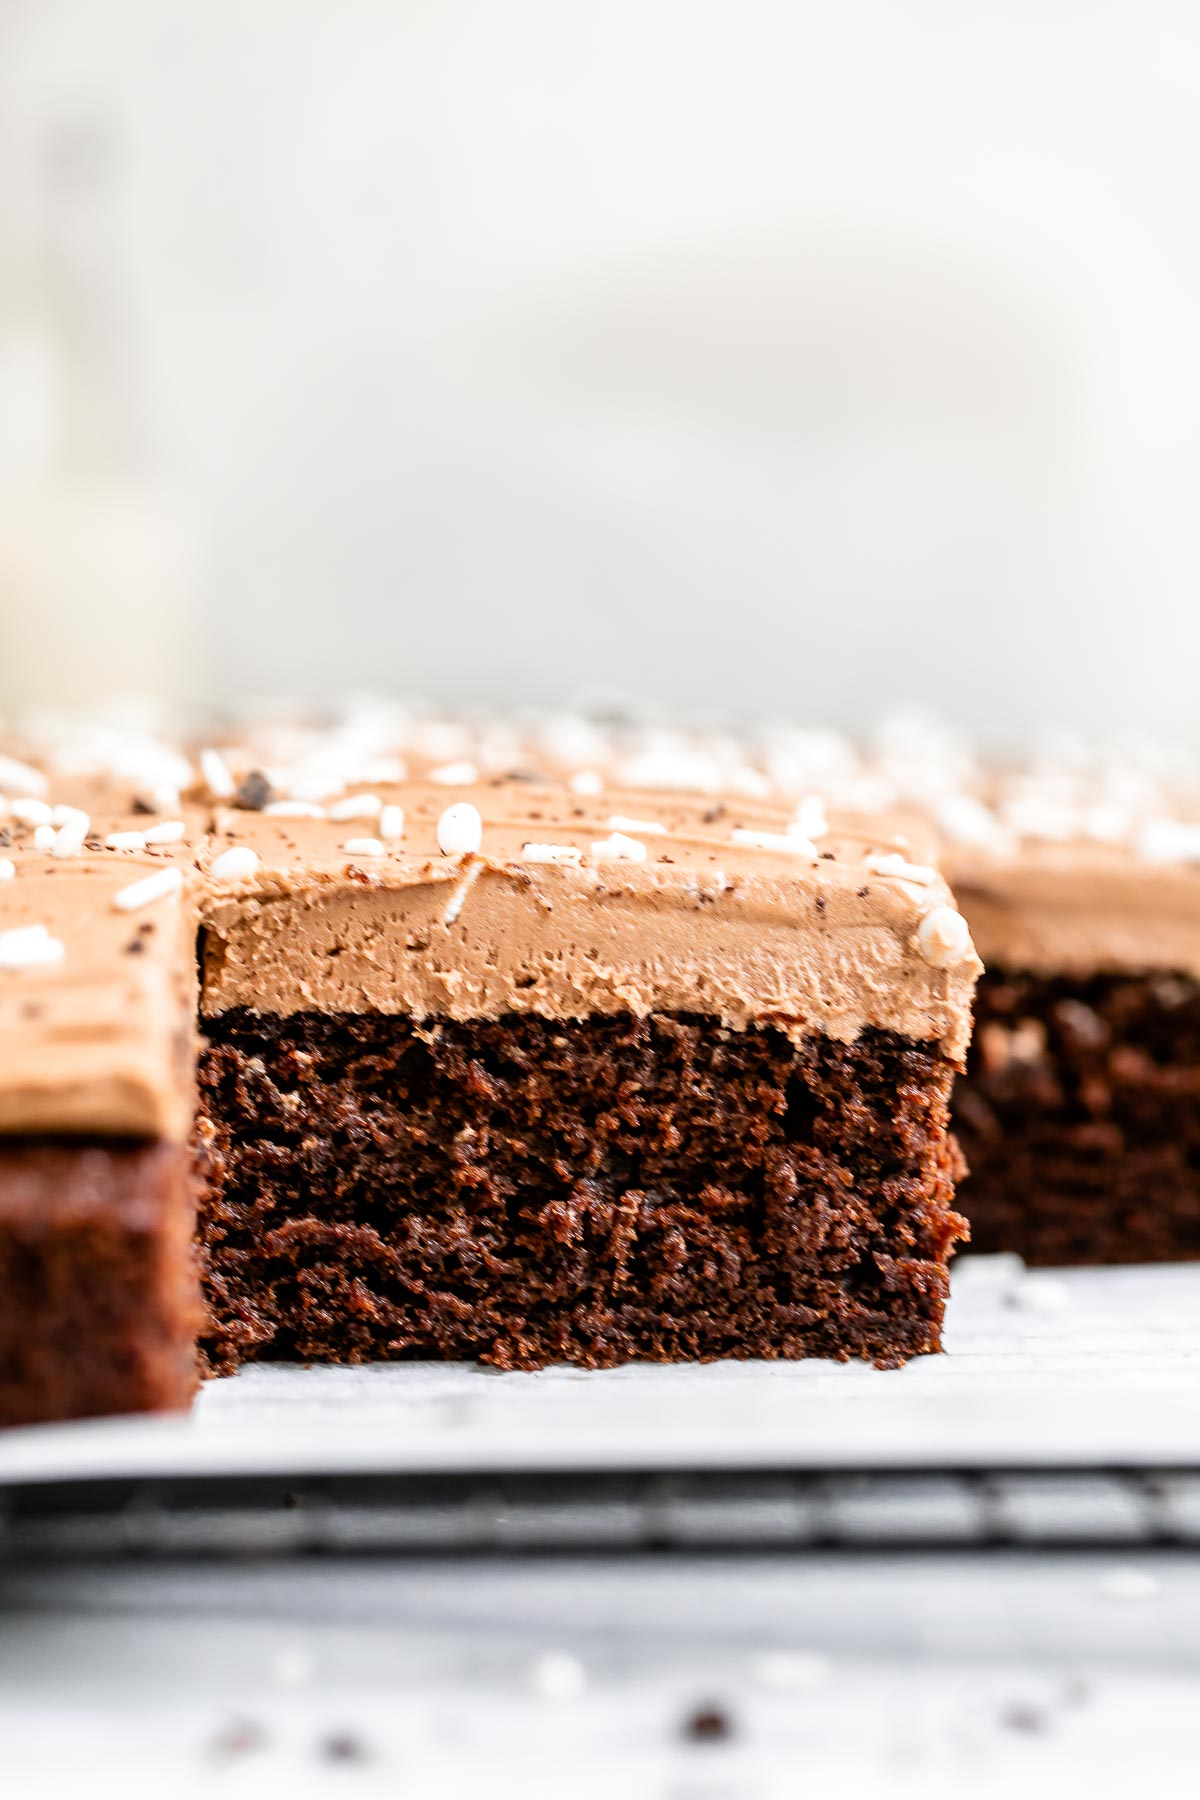 Cake sliced into squares to show the texture.